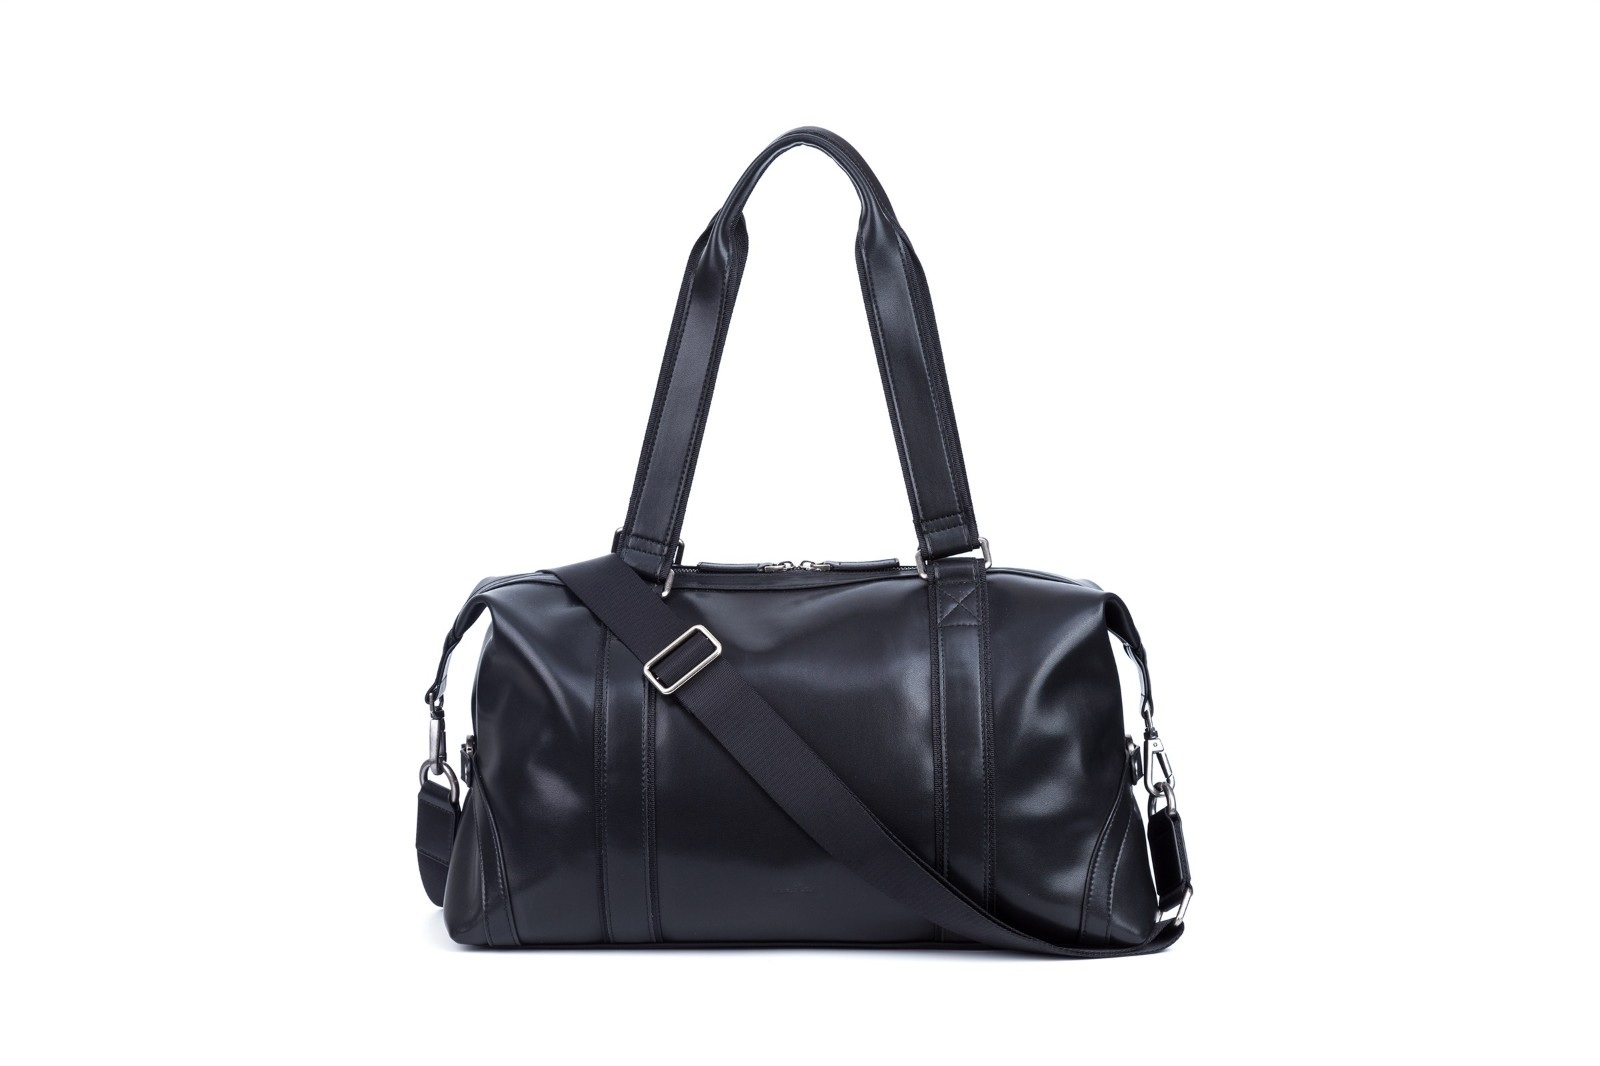 weekend duffle bag mens leather for boy GF bags-6